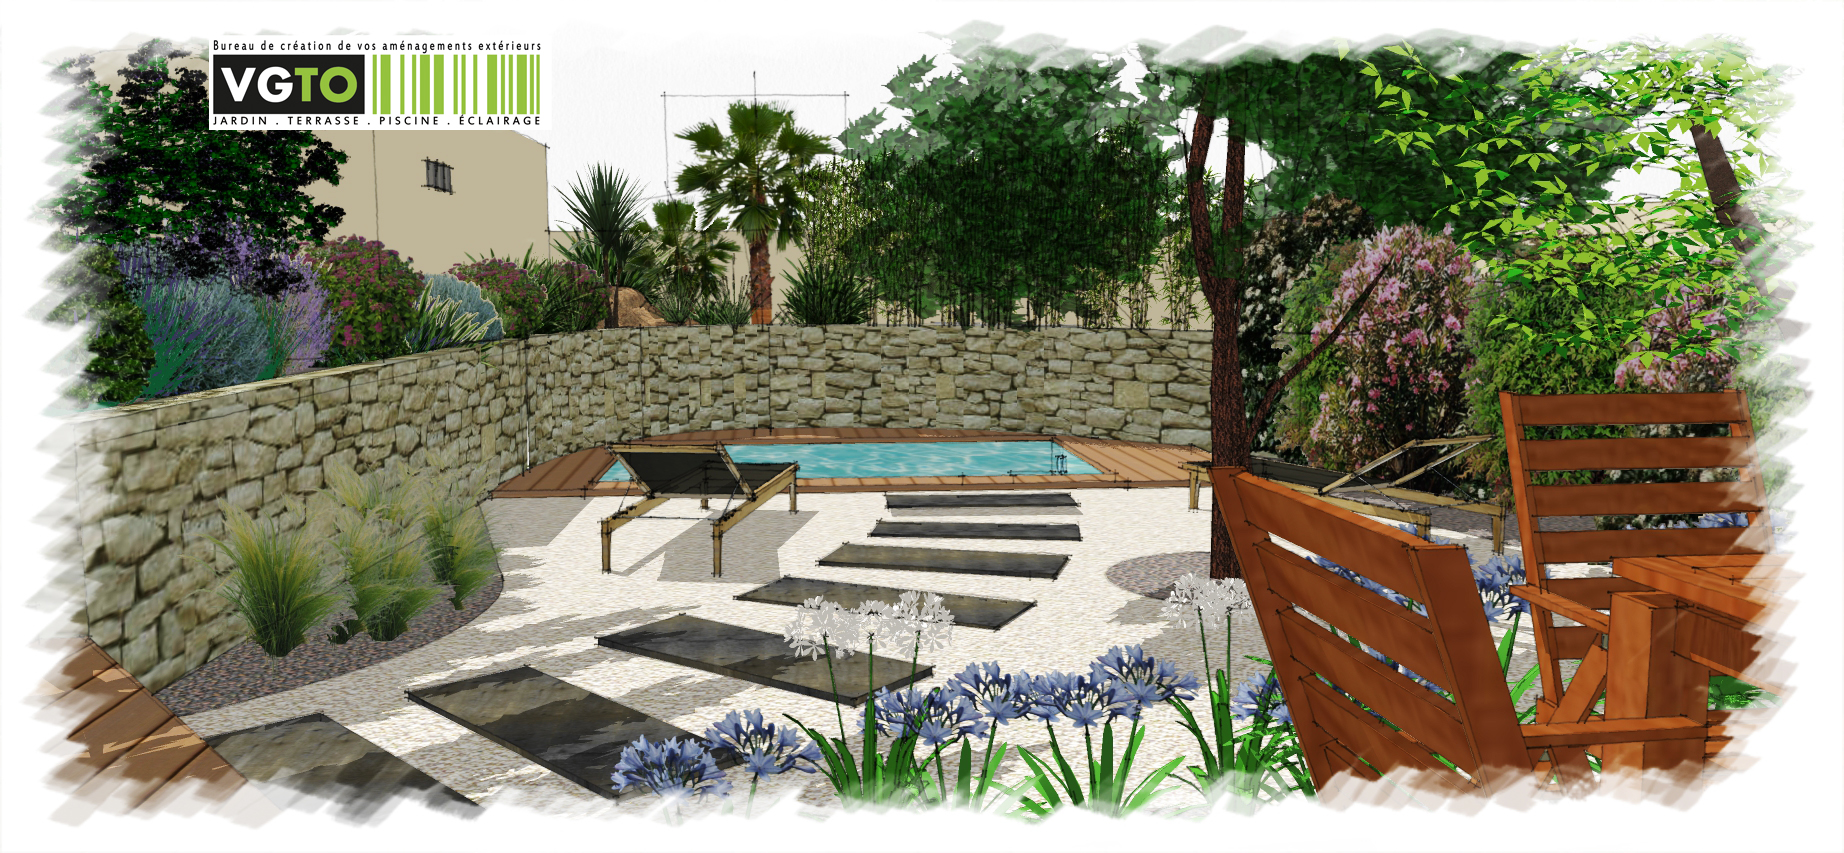 Actualit architectes paysagistes valea concept - Amenagement piscine contemporaine marseille ...